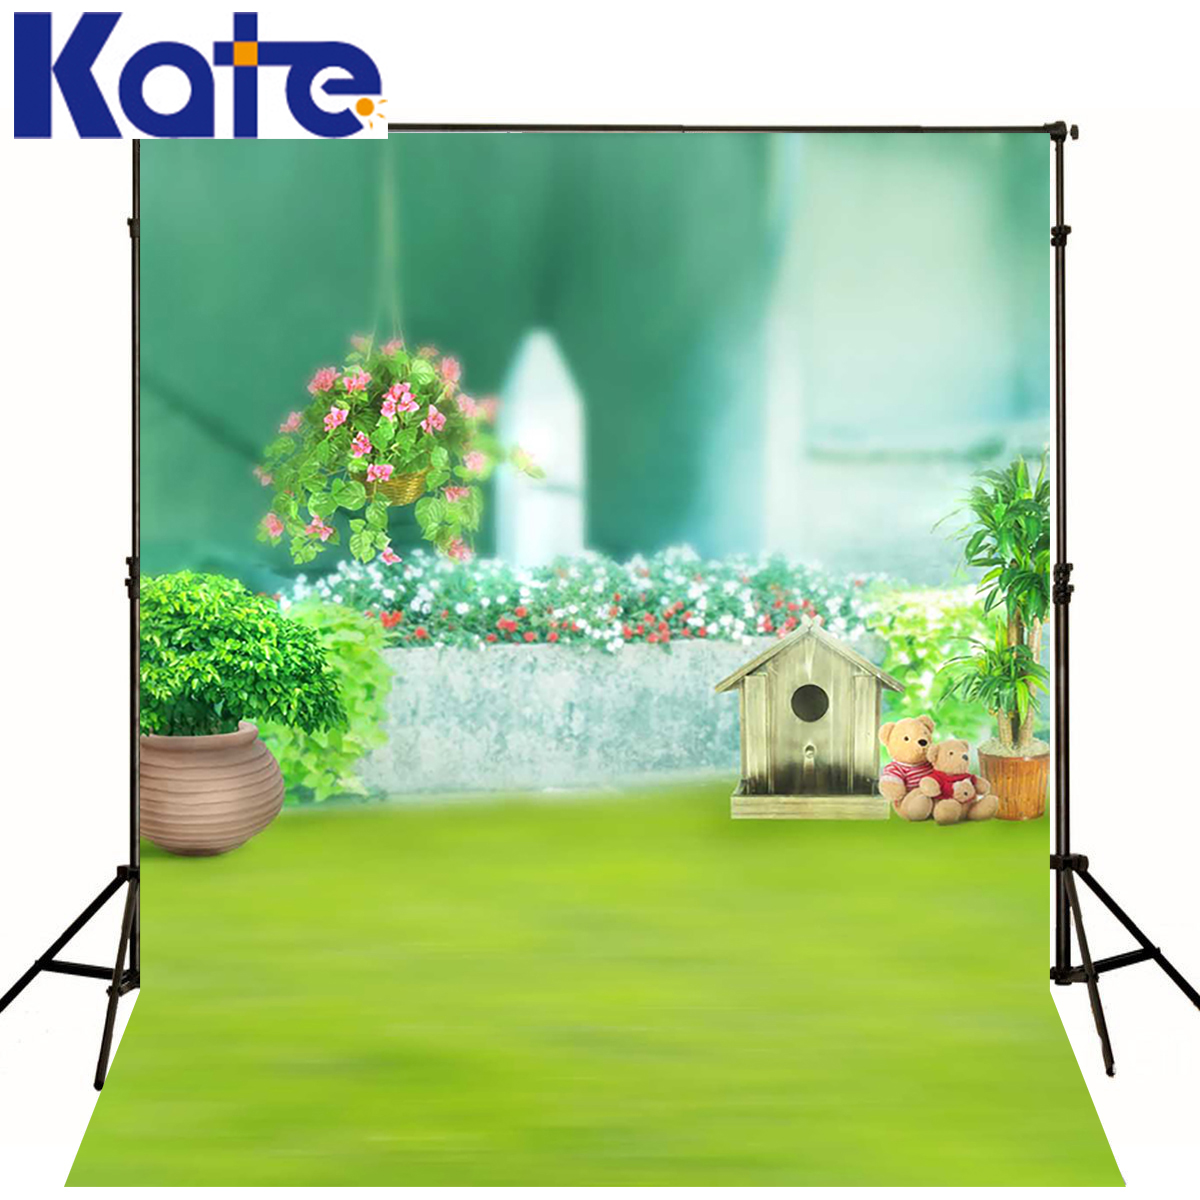 kate photographic background Fuzzy teddy bear grass flowers backdrops boy christmas scenic photocall 10x10ft(China (Mainland))